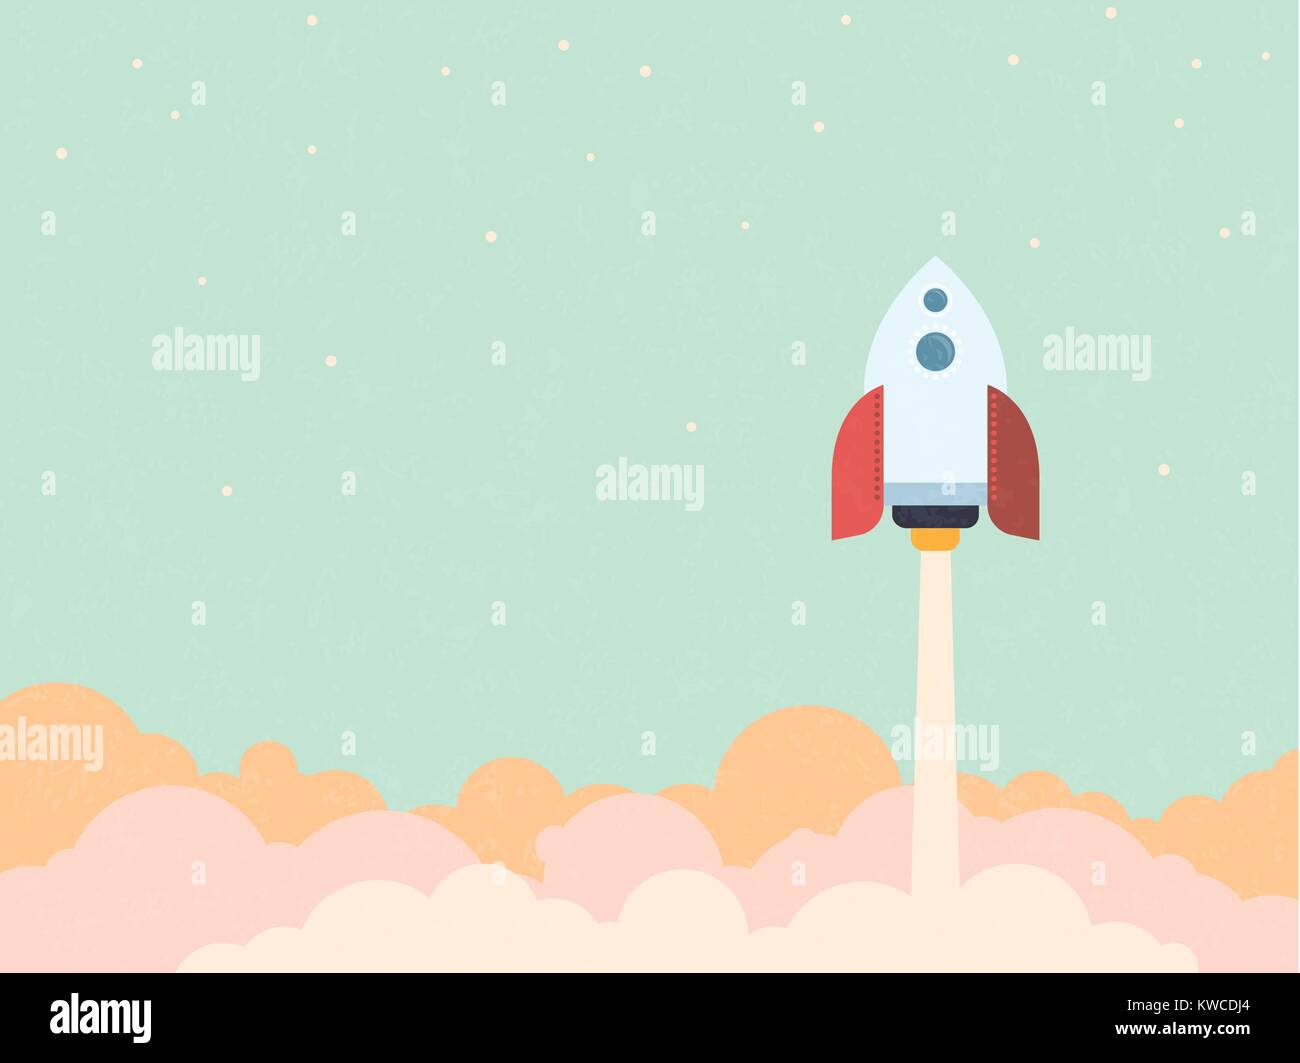 Startup concept - rocket blast off to space retro style vector illustration - Stock Image